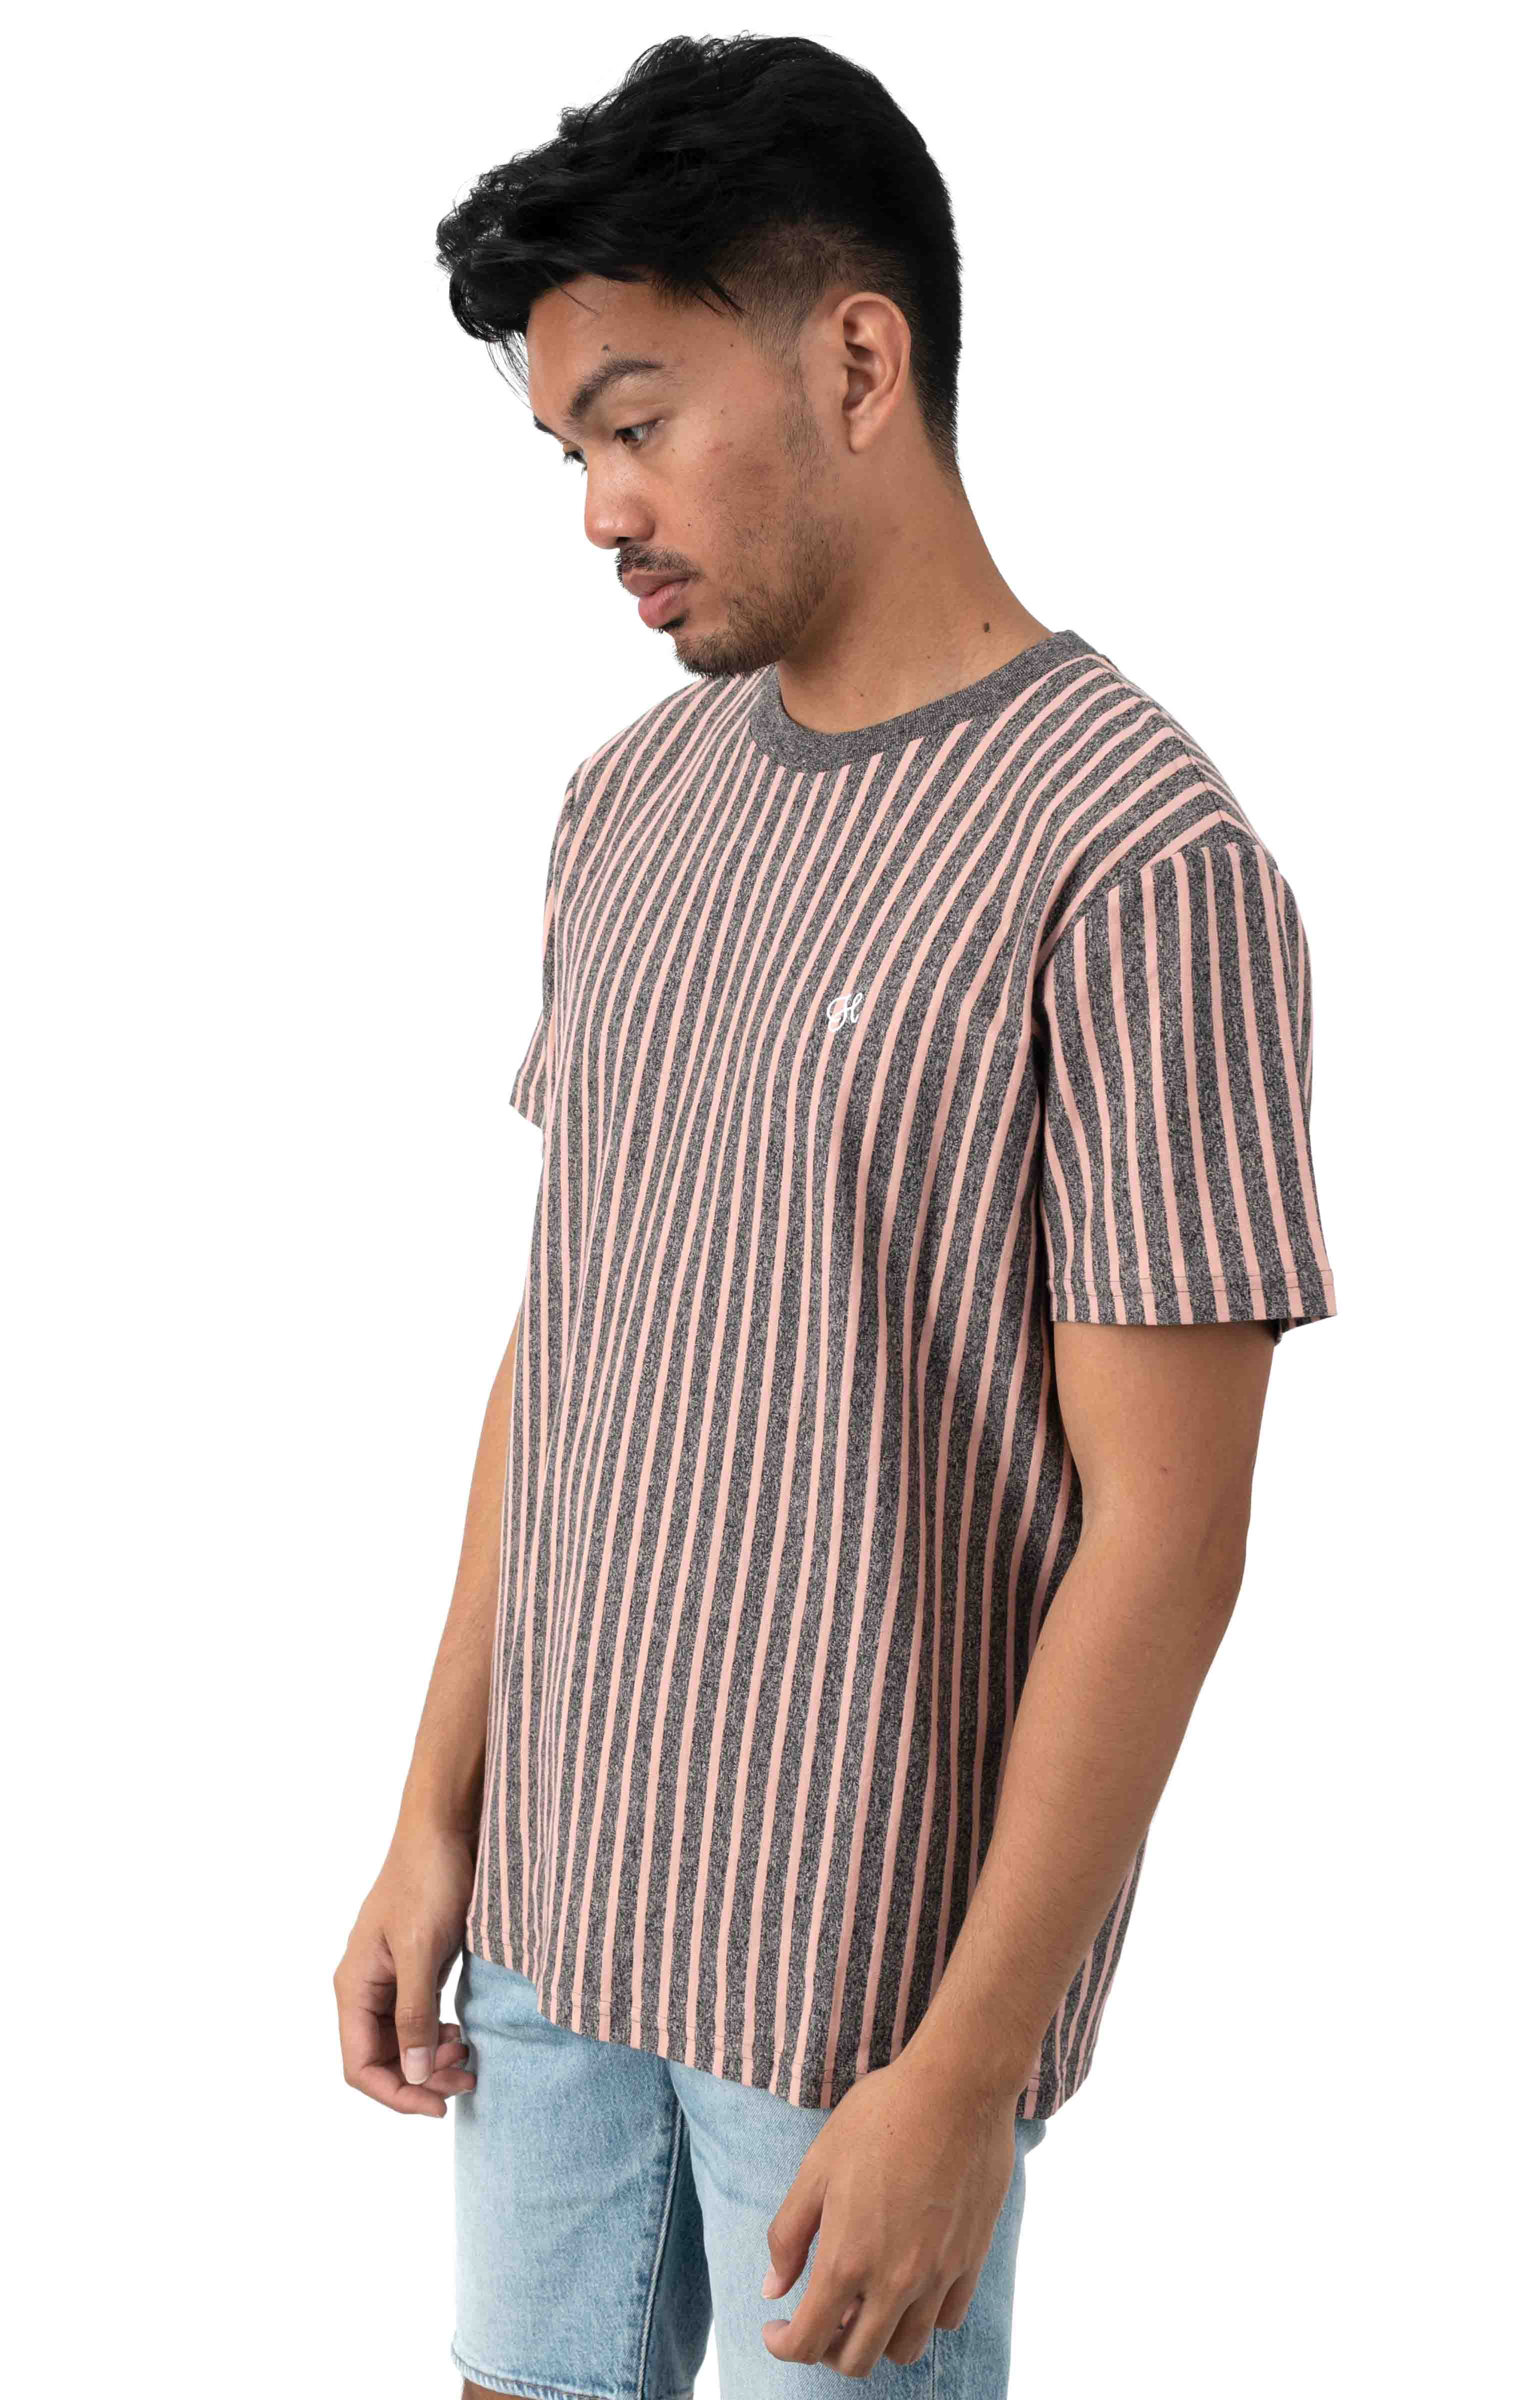 Overdyed Vertical Stripe Shirt - Coral Pink 2